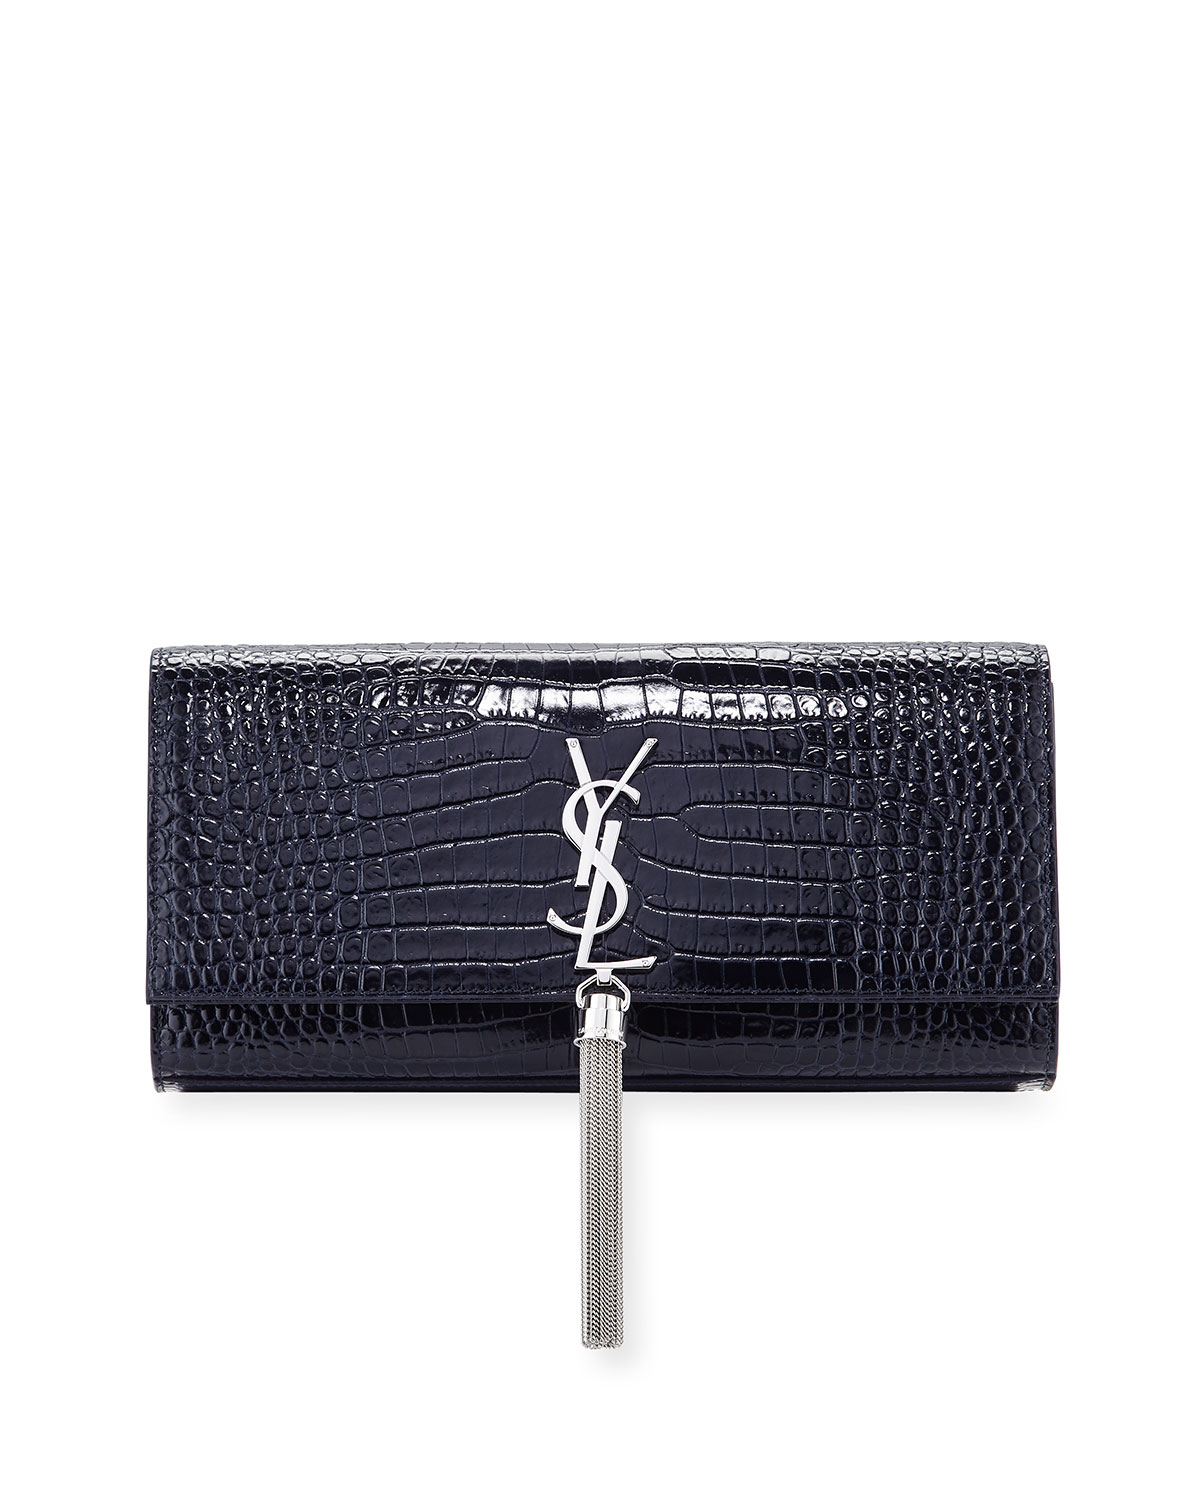 688f4c1bae0 Saint Laurent Kate Monogram YSL Tassel Faux-Crocodile Clutch Bag ...